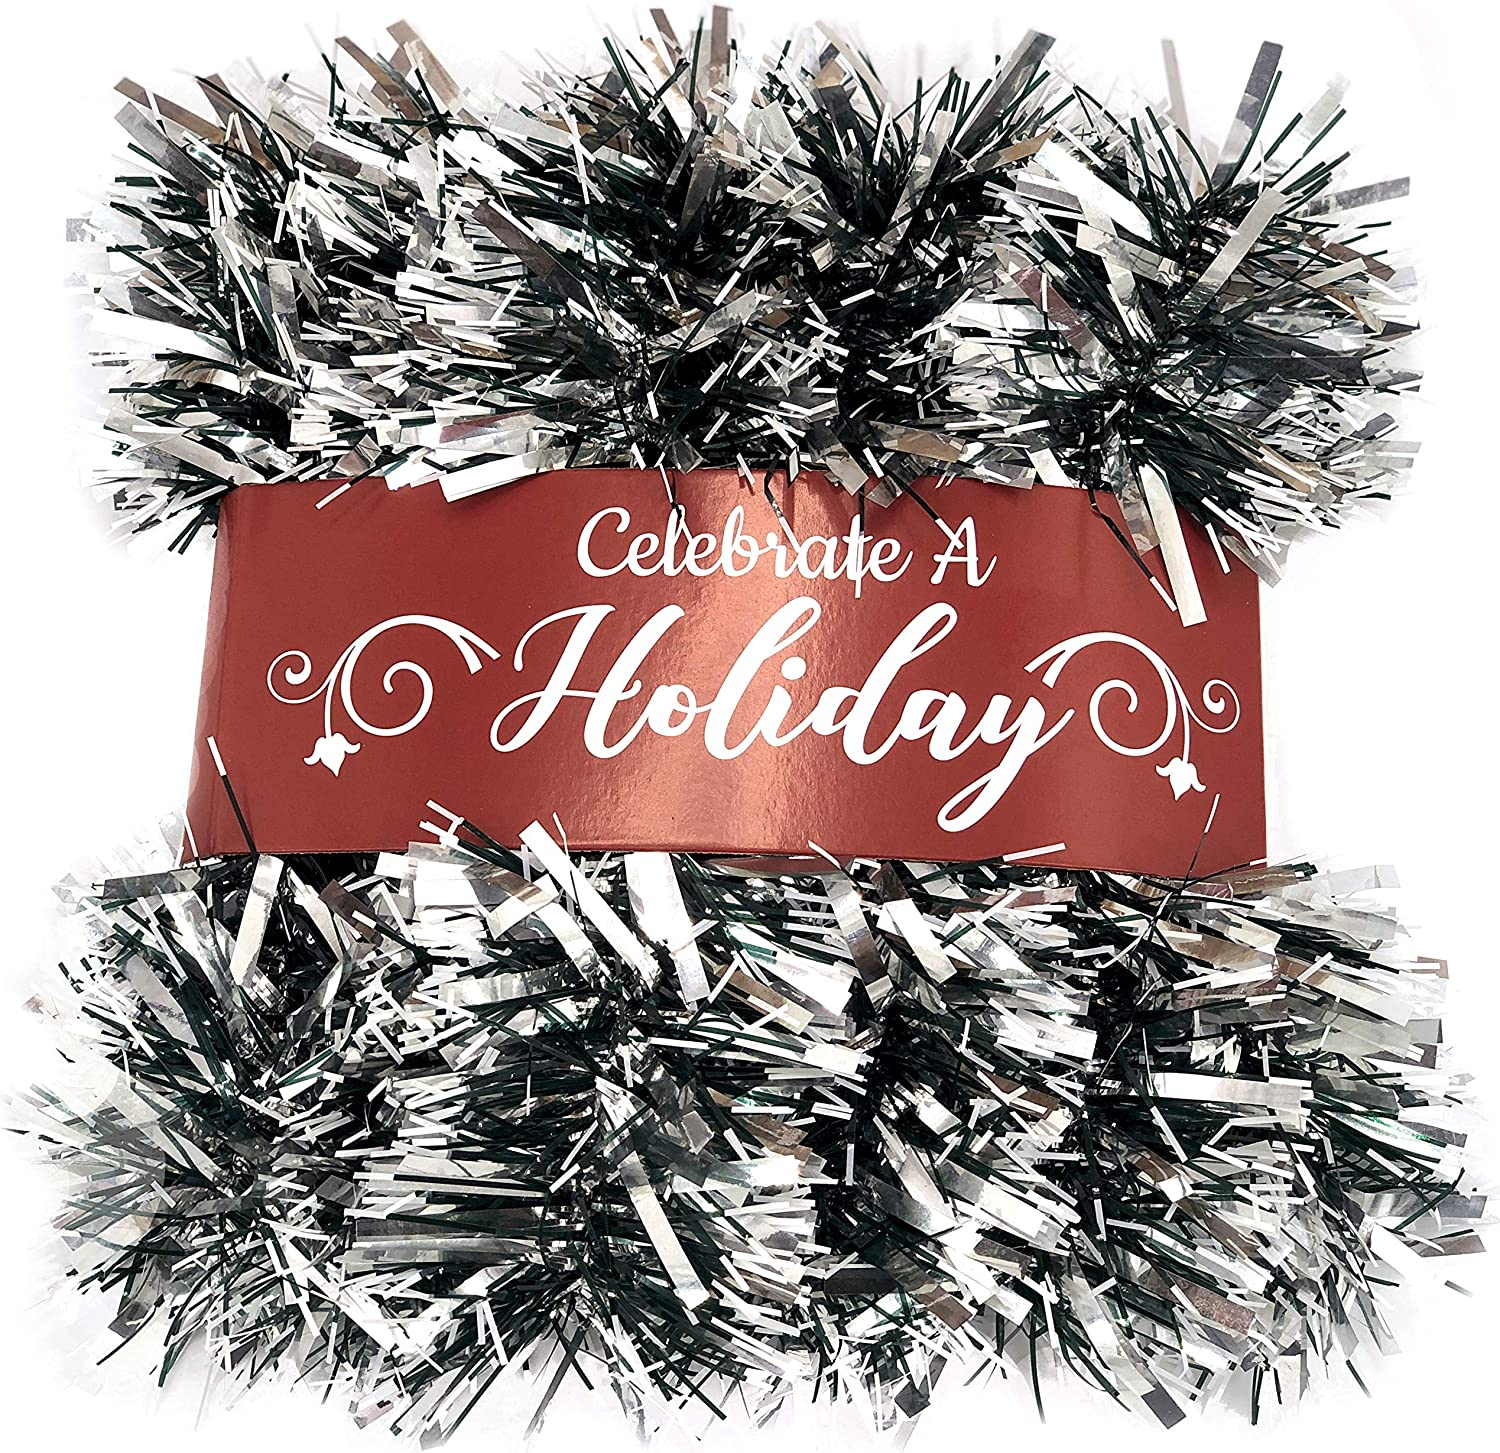 20 Foot Tinsel Garland for Christmas Decorations - Non-Lit Holiday Decor for Outdoor or Indoor Use - Premium Quality Home Garden Artificial Greenery, or Wedding Party Decorations (Silver)